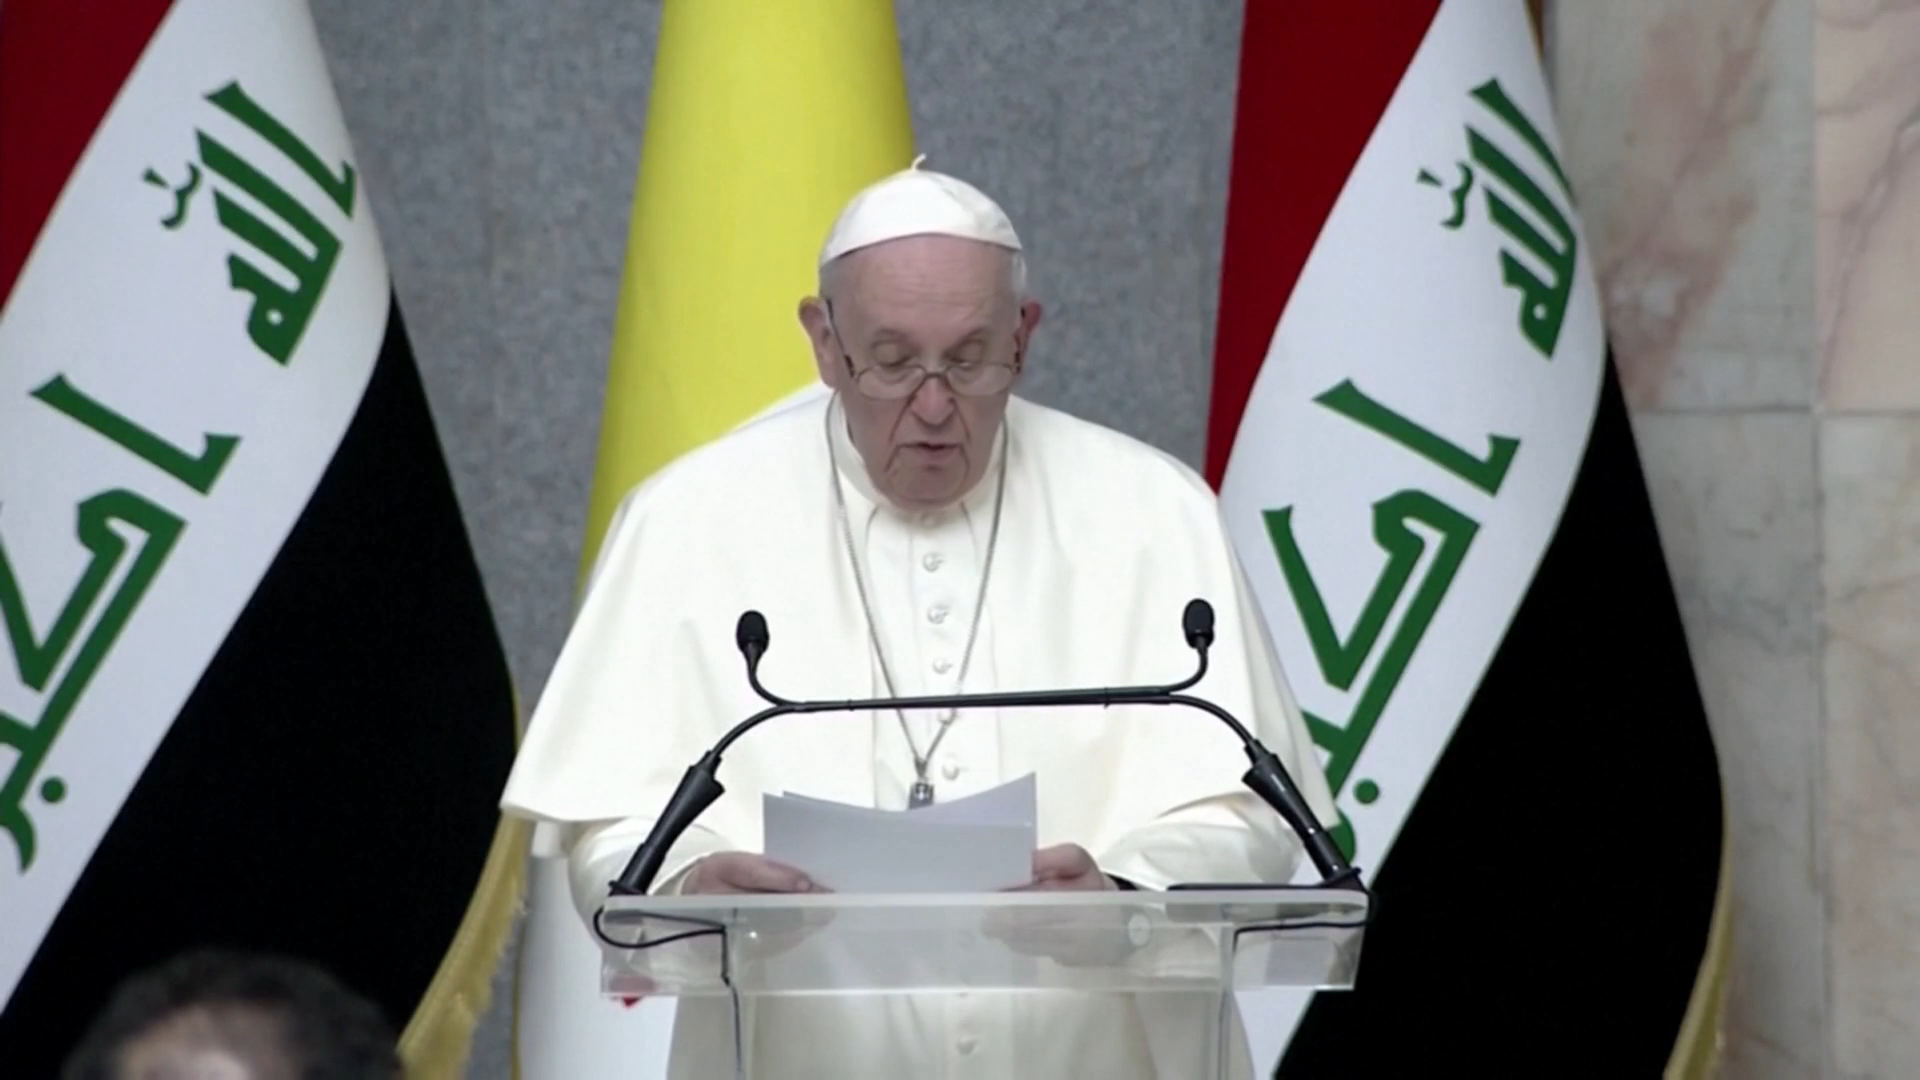 Pope Francis becomes first pontiff to visit Iraq - channel 4